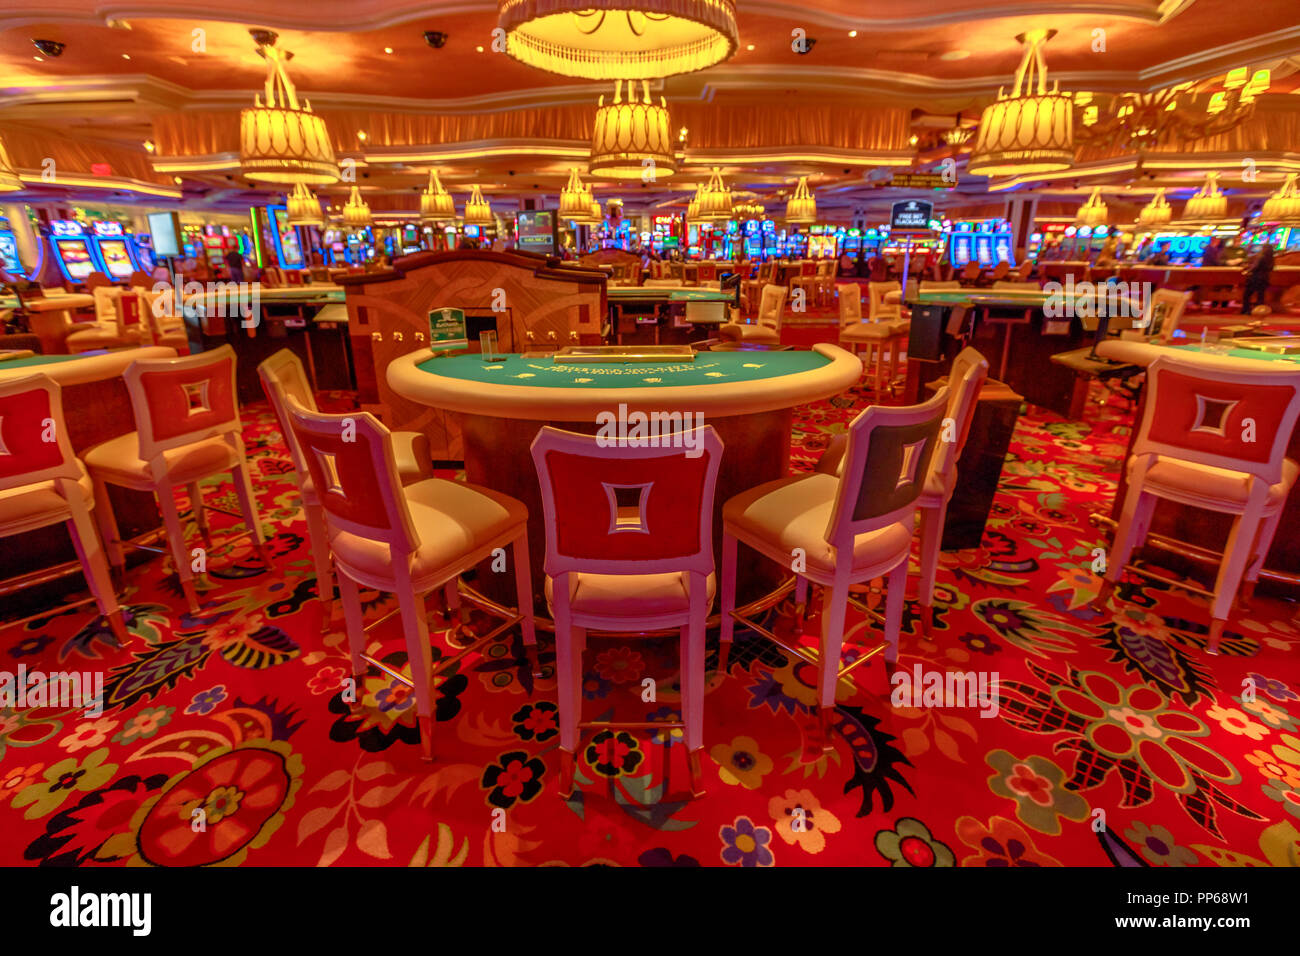 Las Vegas, Nevada, United States - August 18, 2018: closeup of blackjack tables inside the luxurious Wynn Las Vegas Resort Hotel, a 5-star, themed Paradise in Las Vegas Strip. - Stock Image